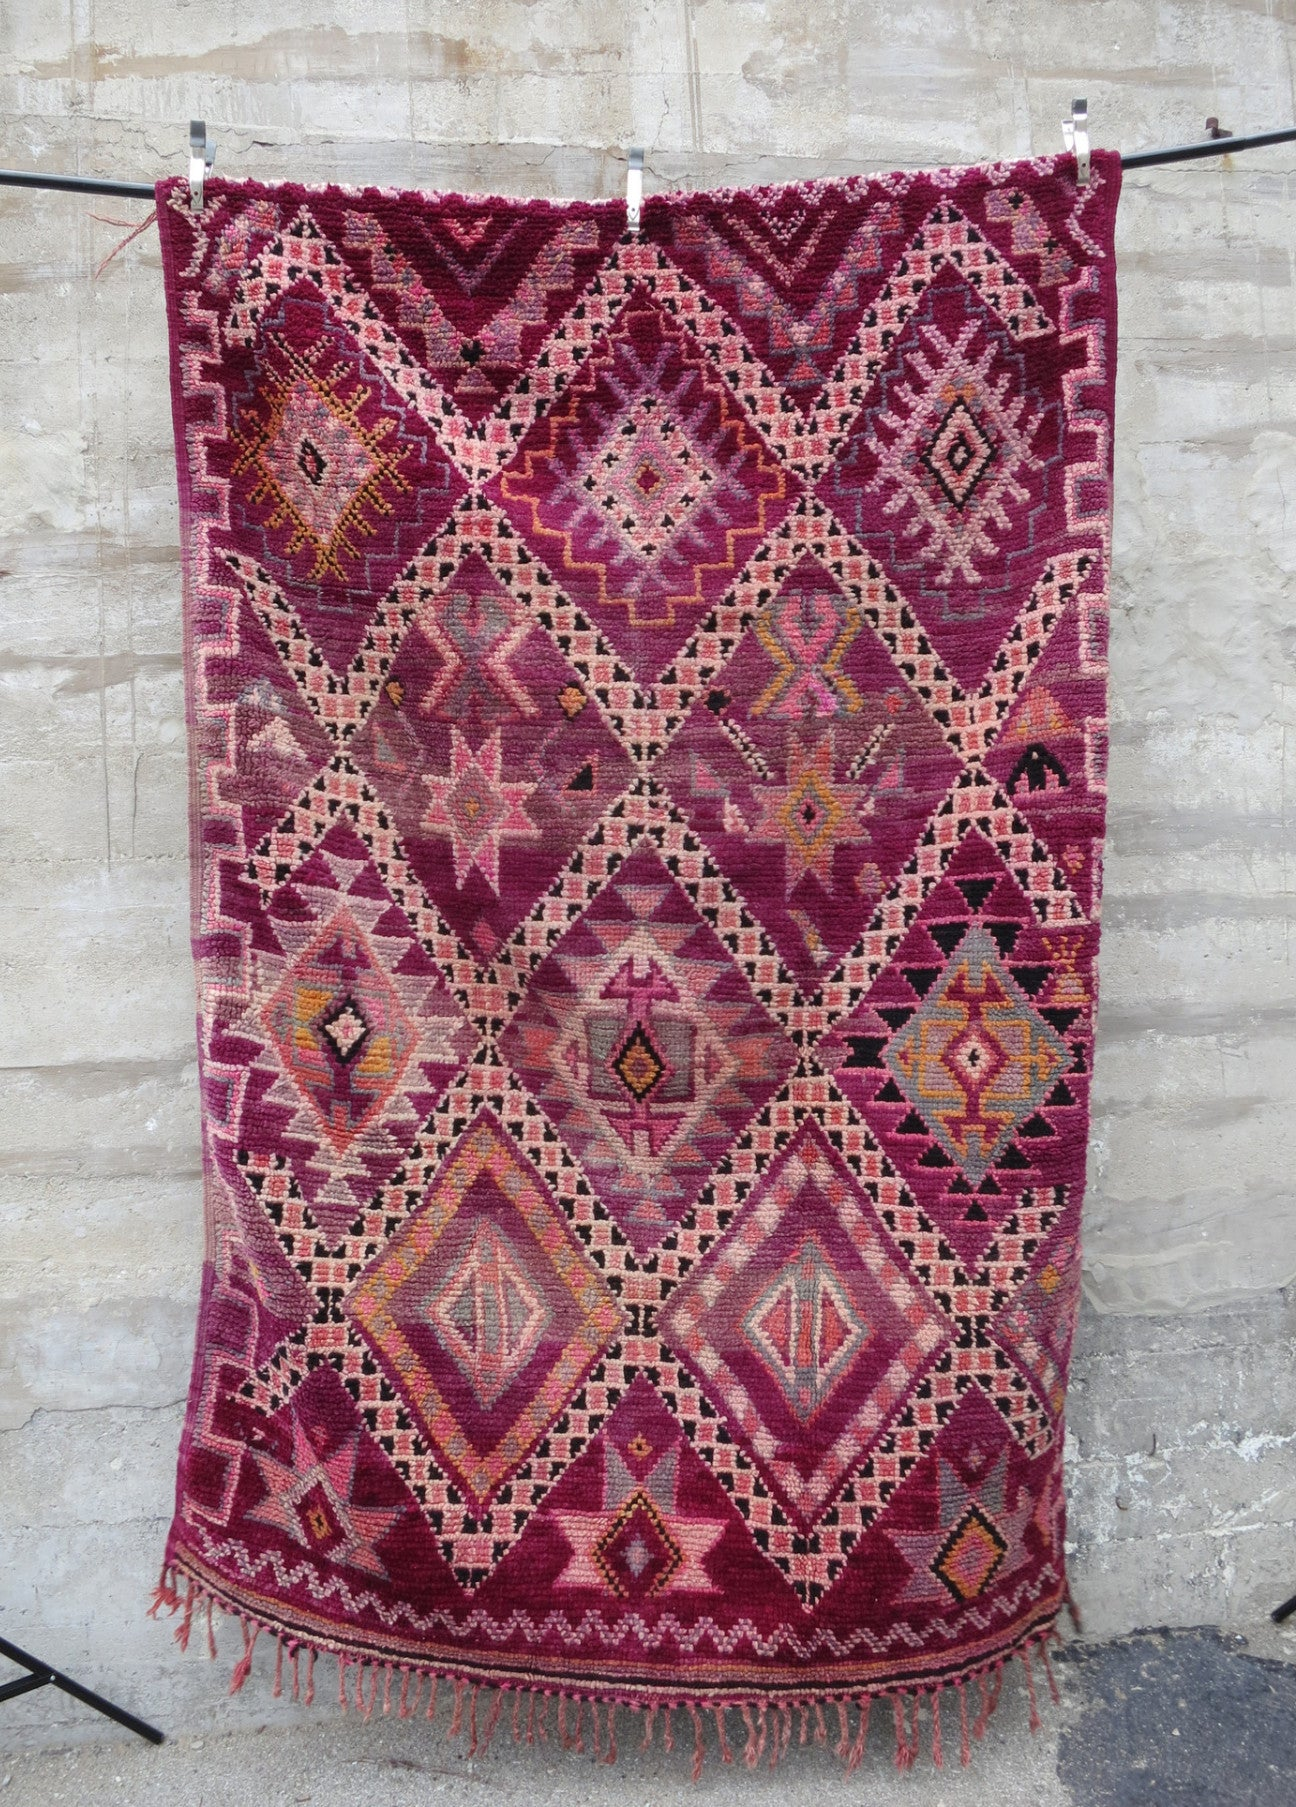 here tent bokhara x image large for click gallery size a full afghan rug